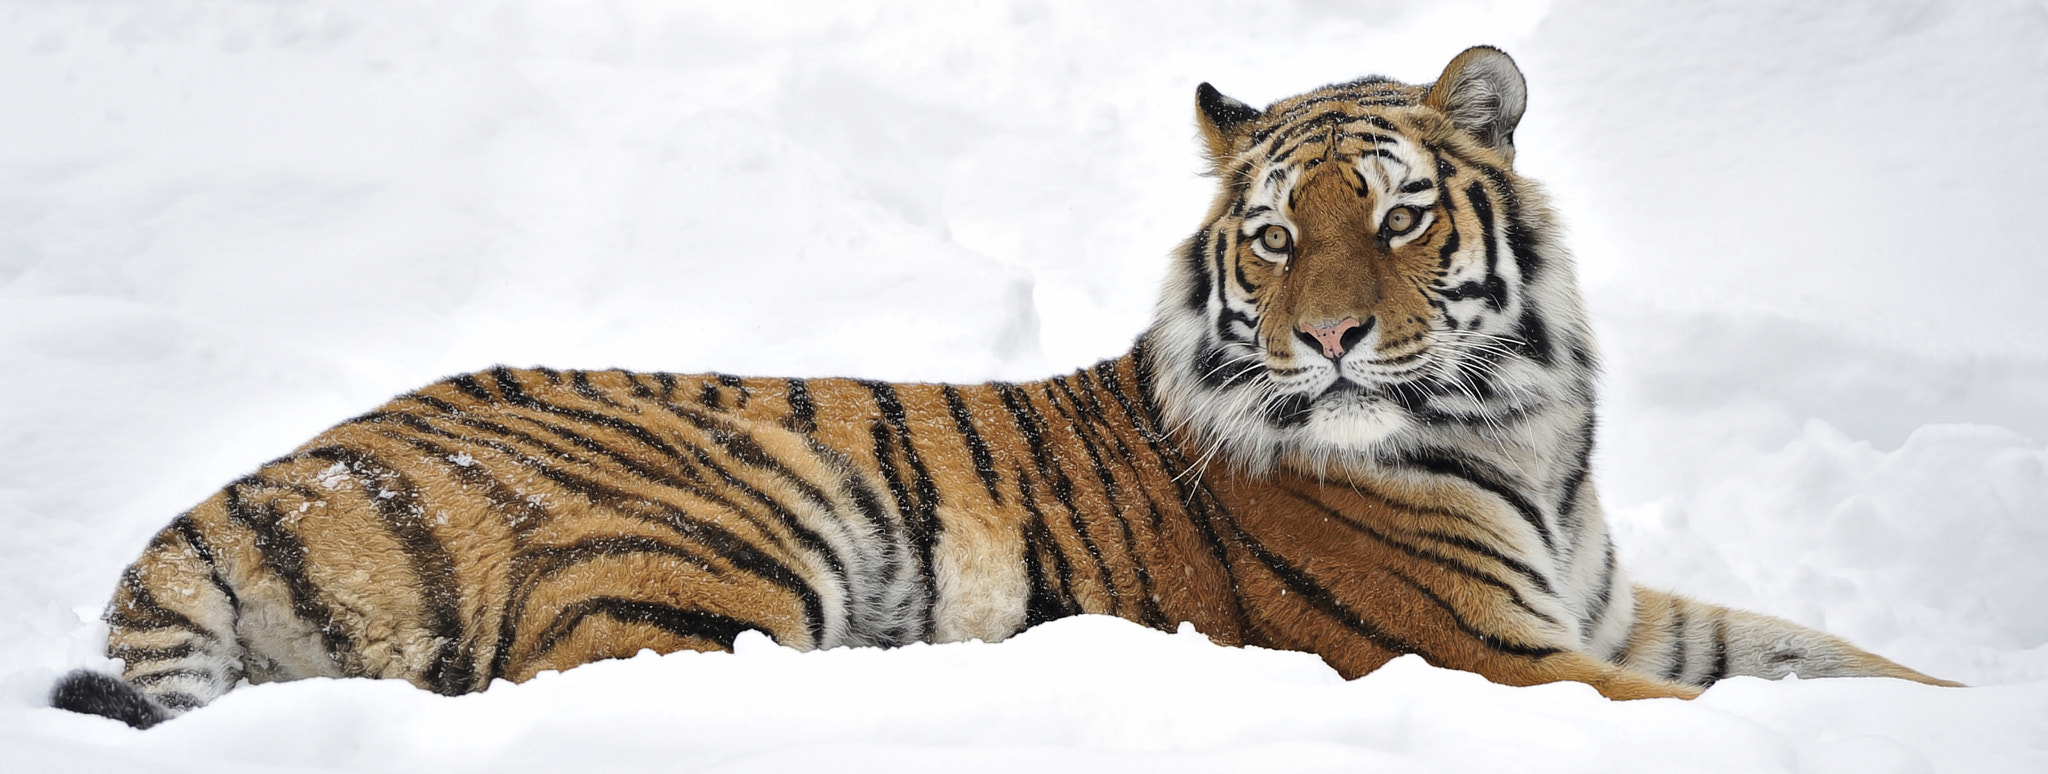 Photograph Tigress Snow Panorama by Josef Gelernter on 500px